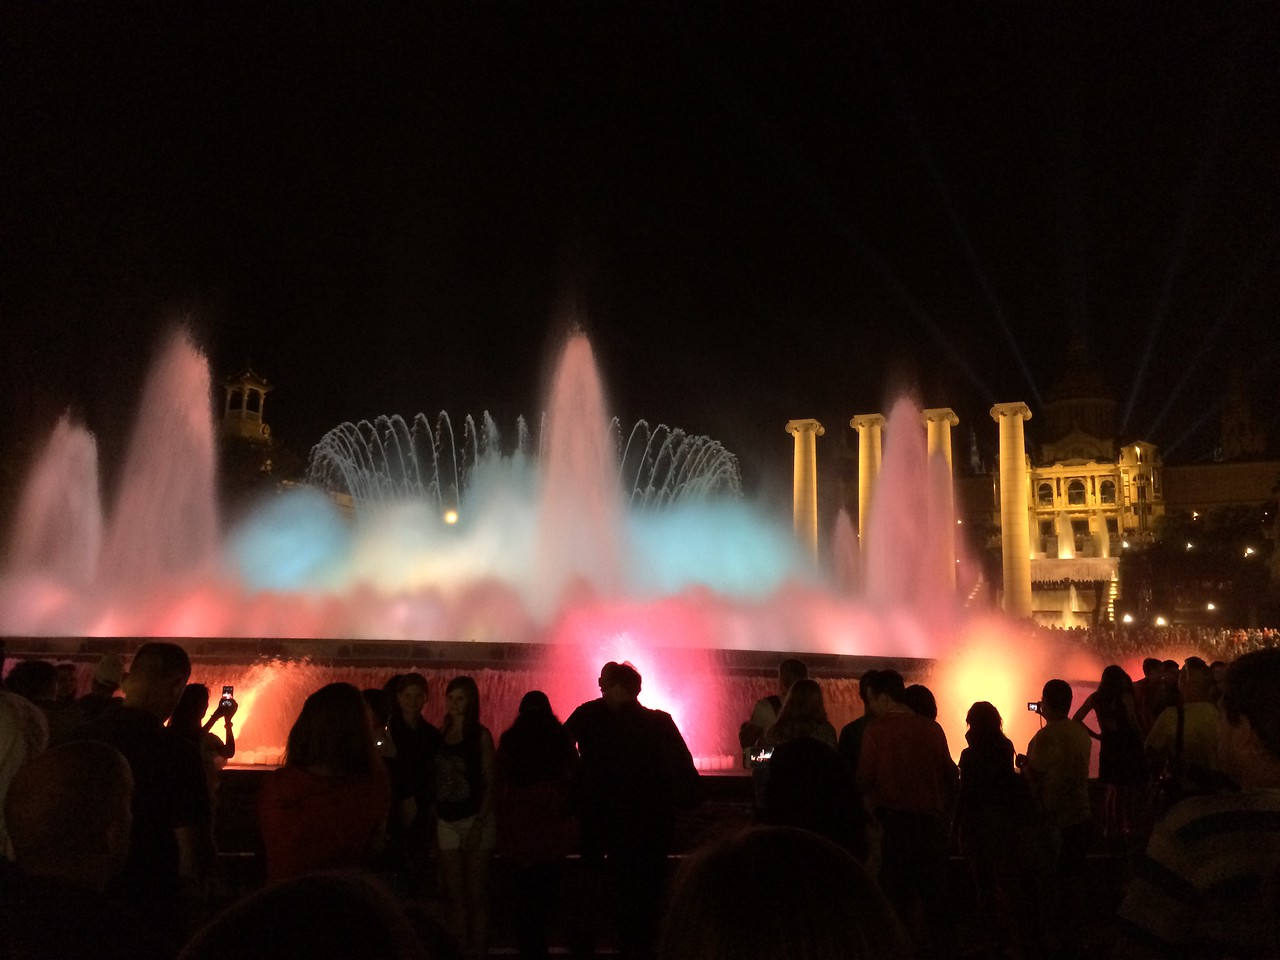 We took the train back from our hotel to Plaza Espana(Catalan: Plaça d'Espanya).....Ah, the Magic Fountain of Montjüic(Font màgica de Montjuïc in Catalan). The backdrop is the Palau Nacional(English: National Palace). Built for the 1929 Barcelona International Exposition.